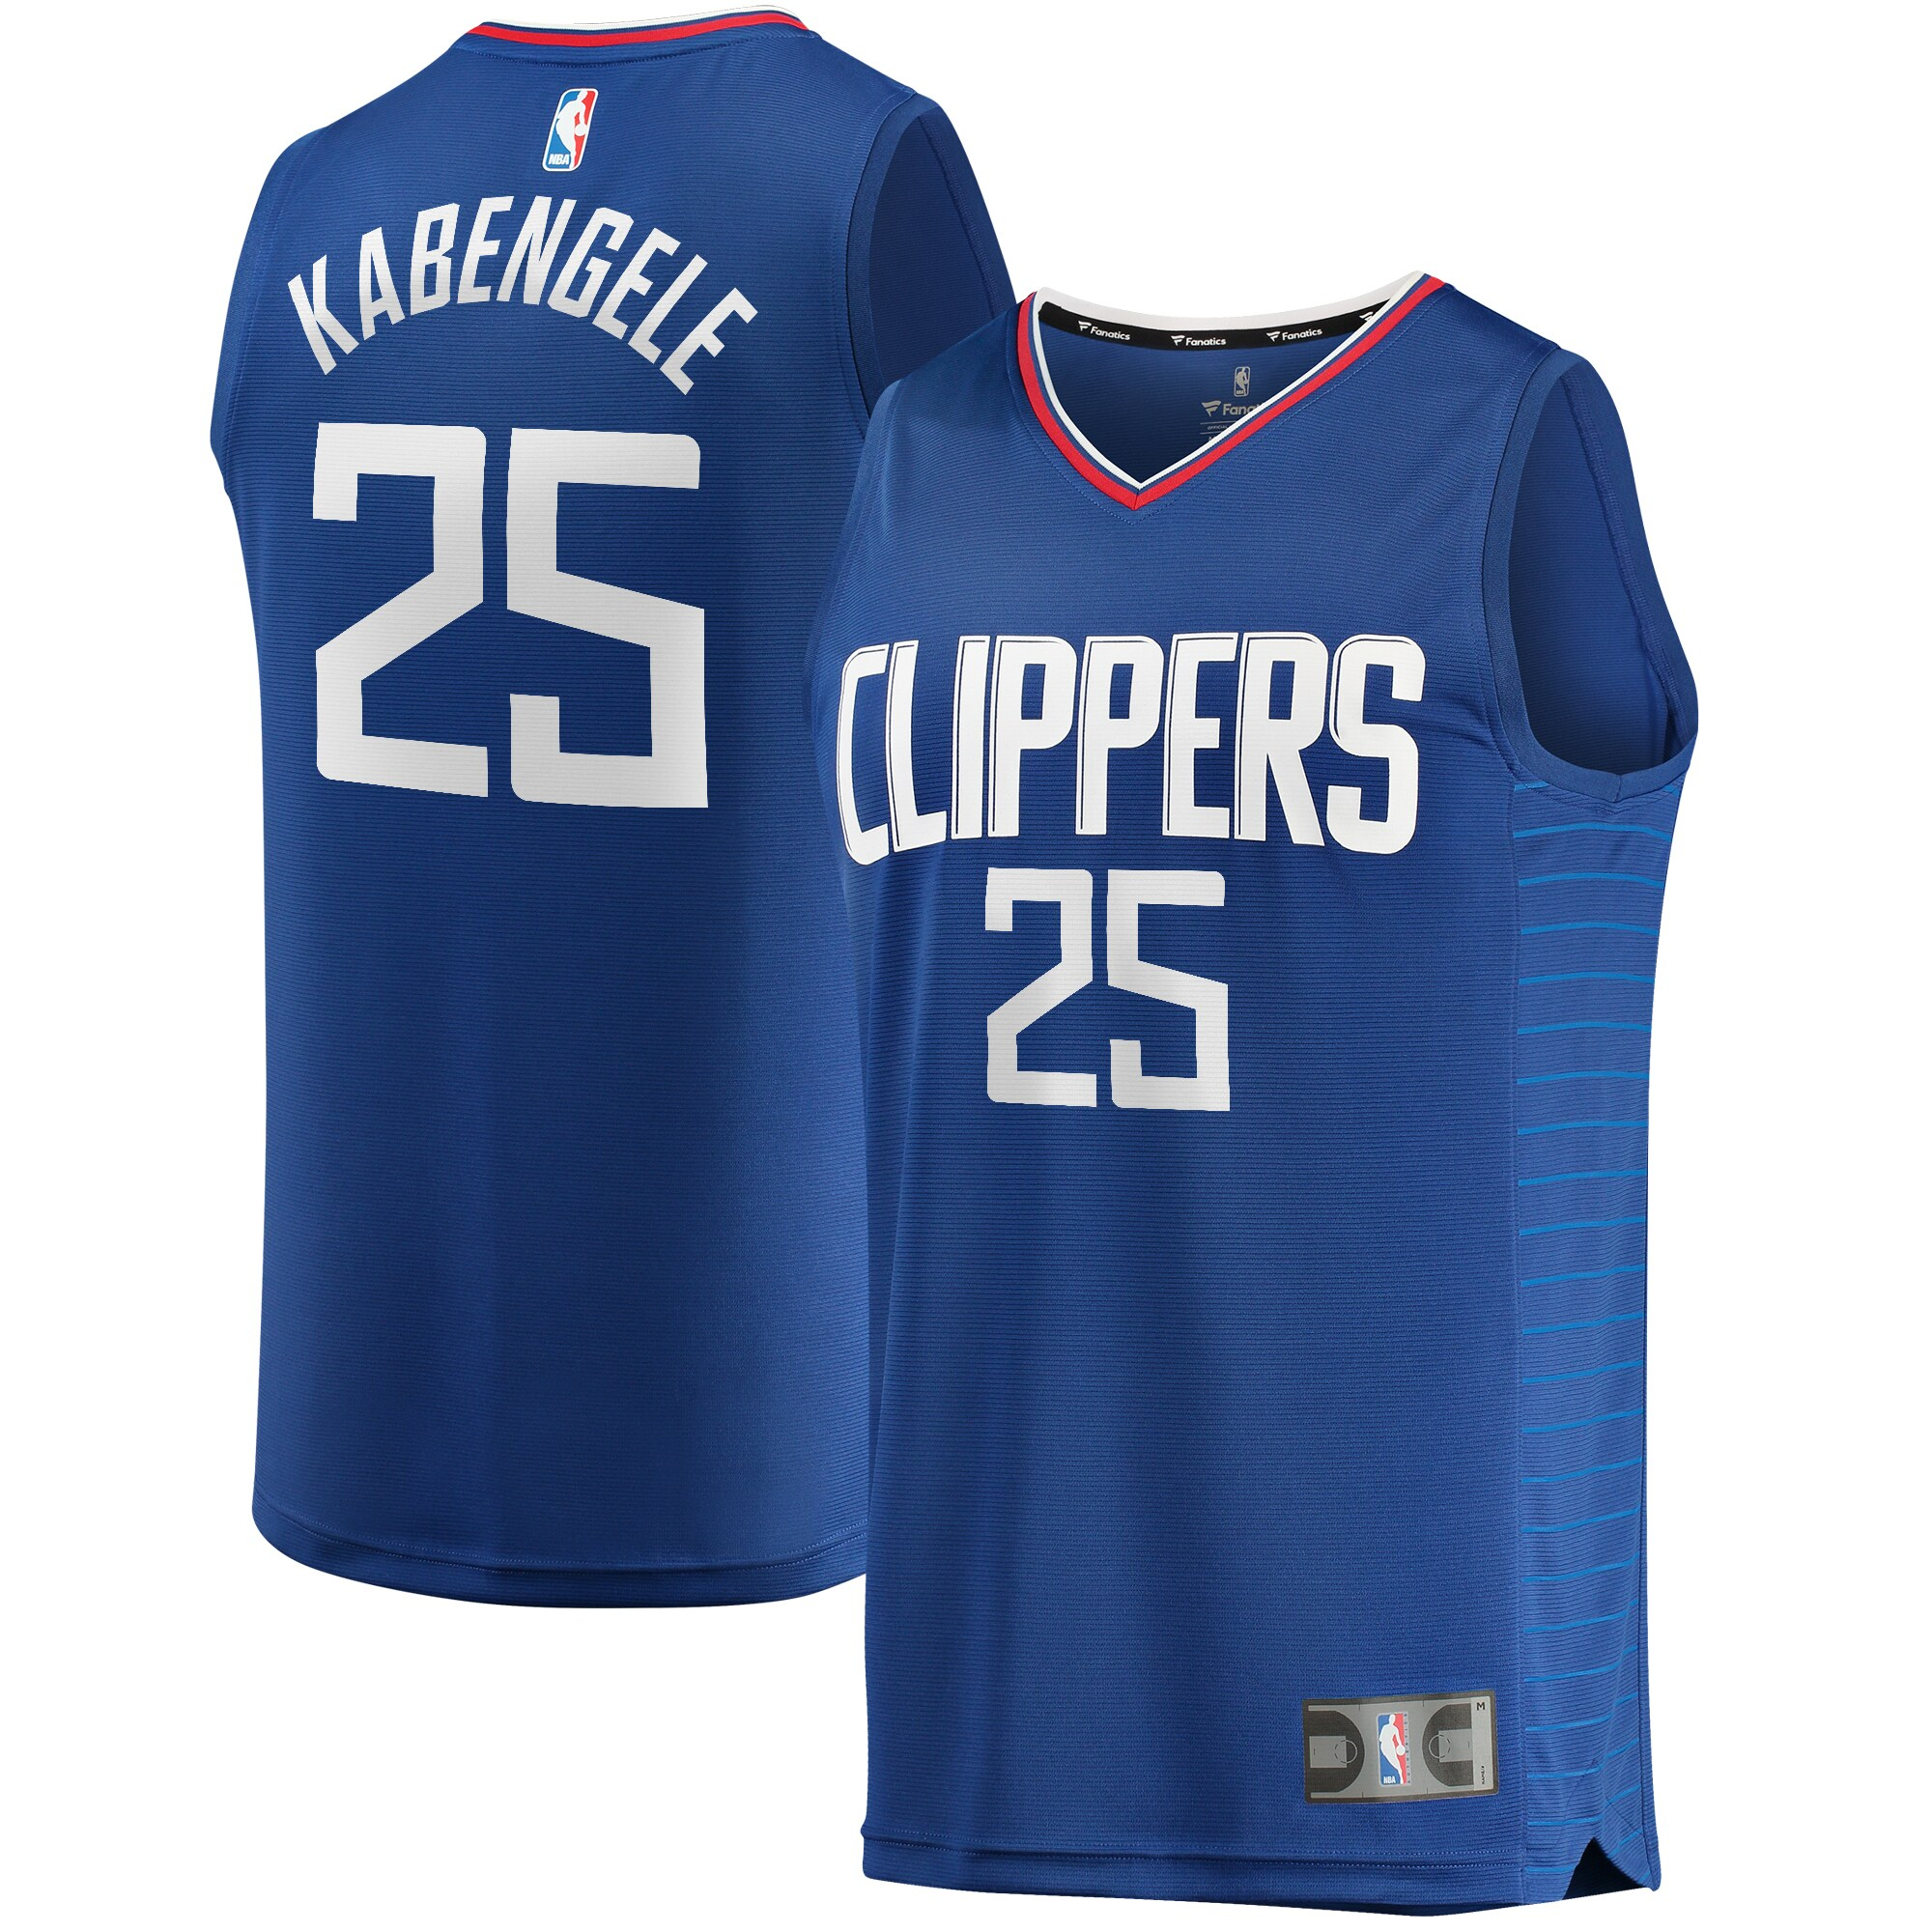 Mfiondu Kabengele LA Clippers Fanatics Branded Fast Break Replica Jersey Royal - Icon Edition